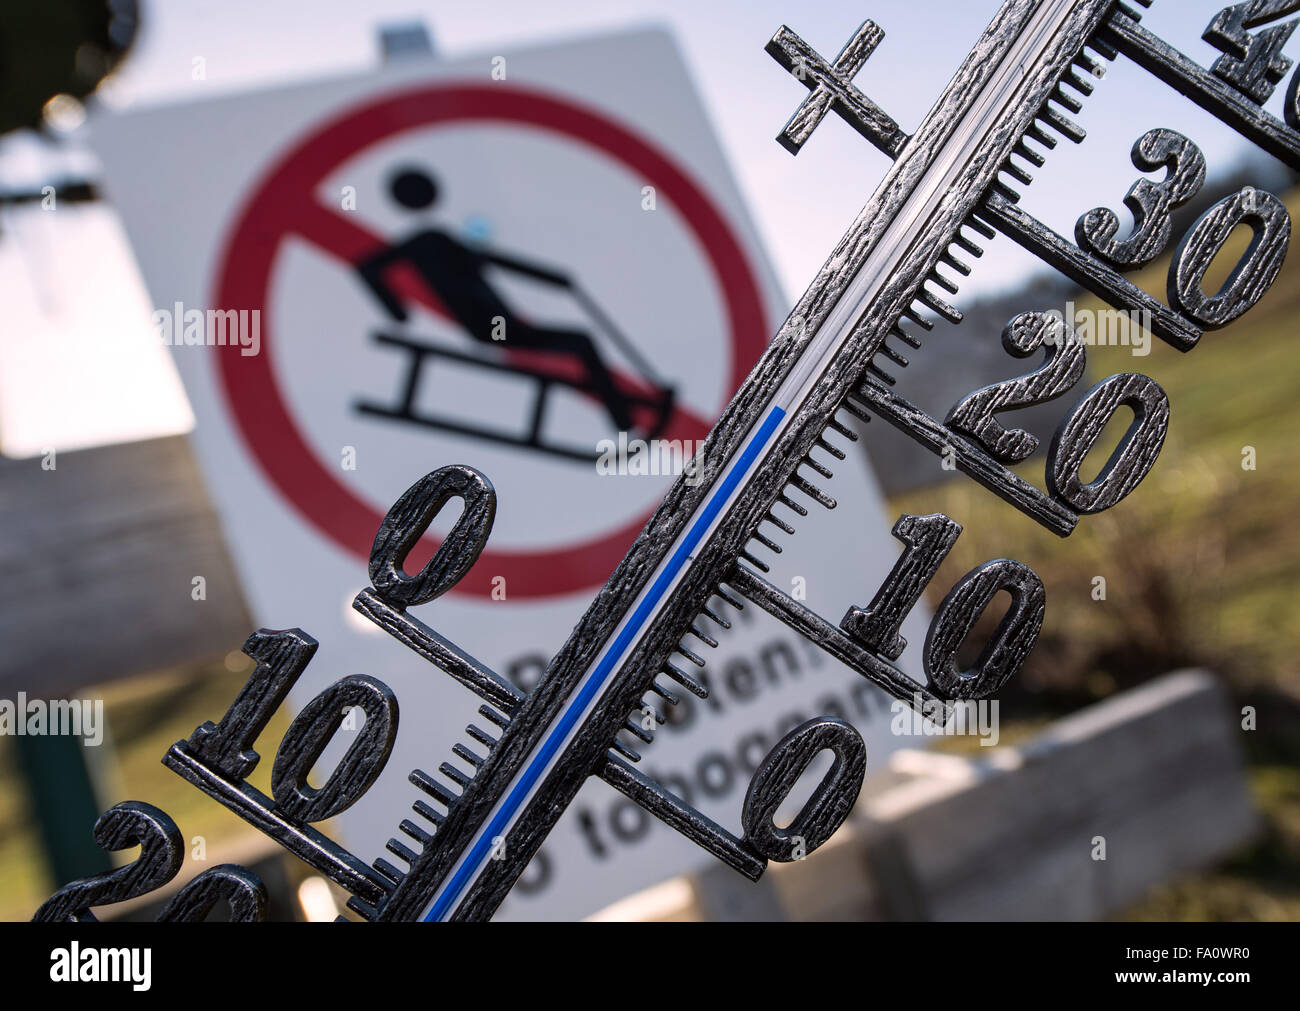 ILLUSTRATION - A thermometer measures nearly 18 degrees Celsius in front of a sign that prohibits bobsleighing near - Stock Image